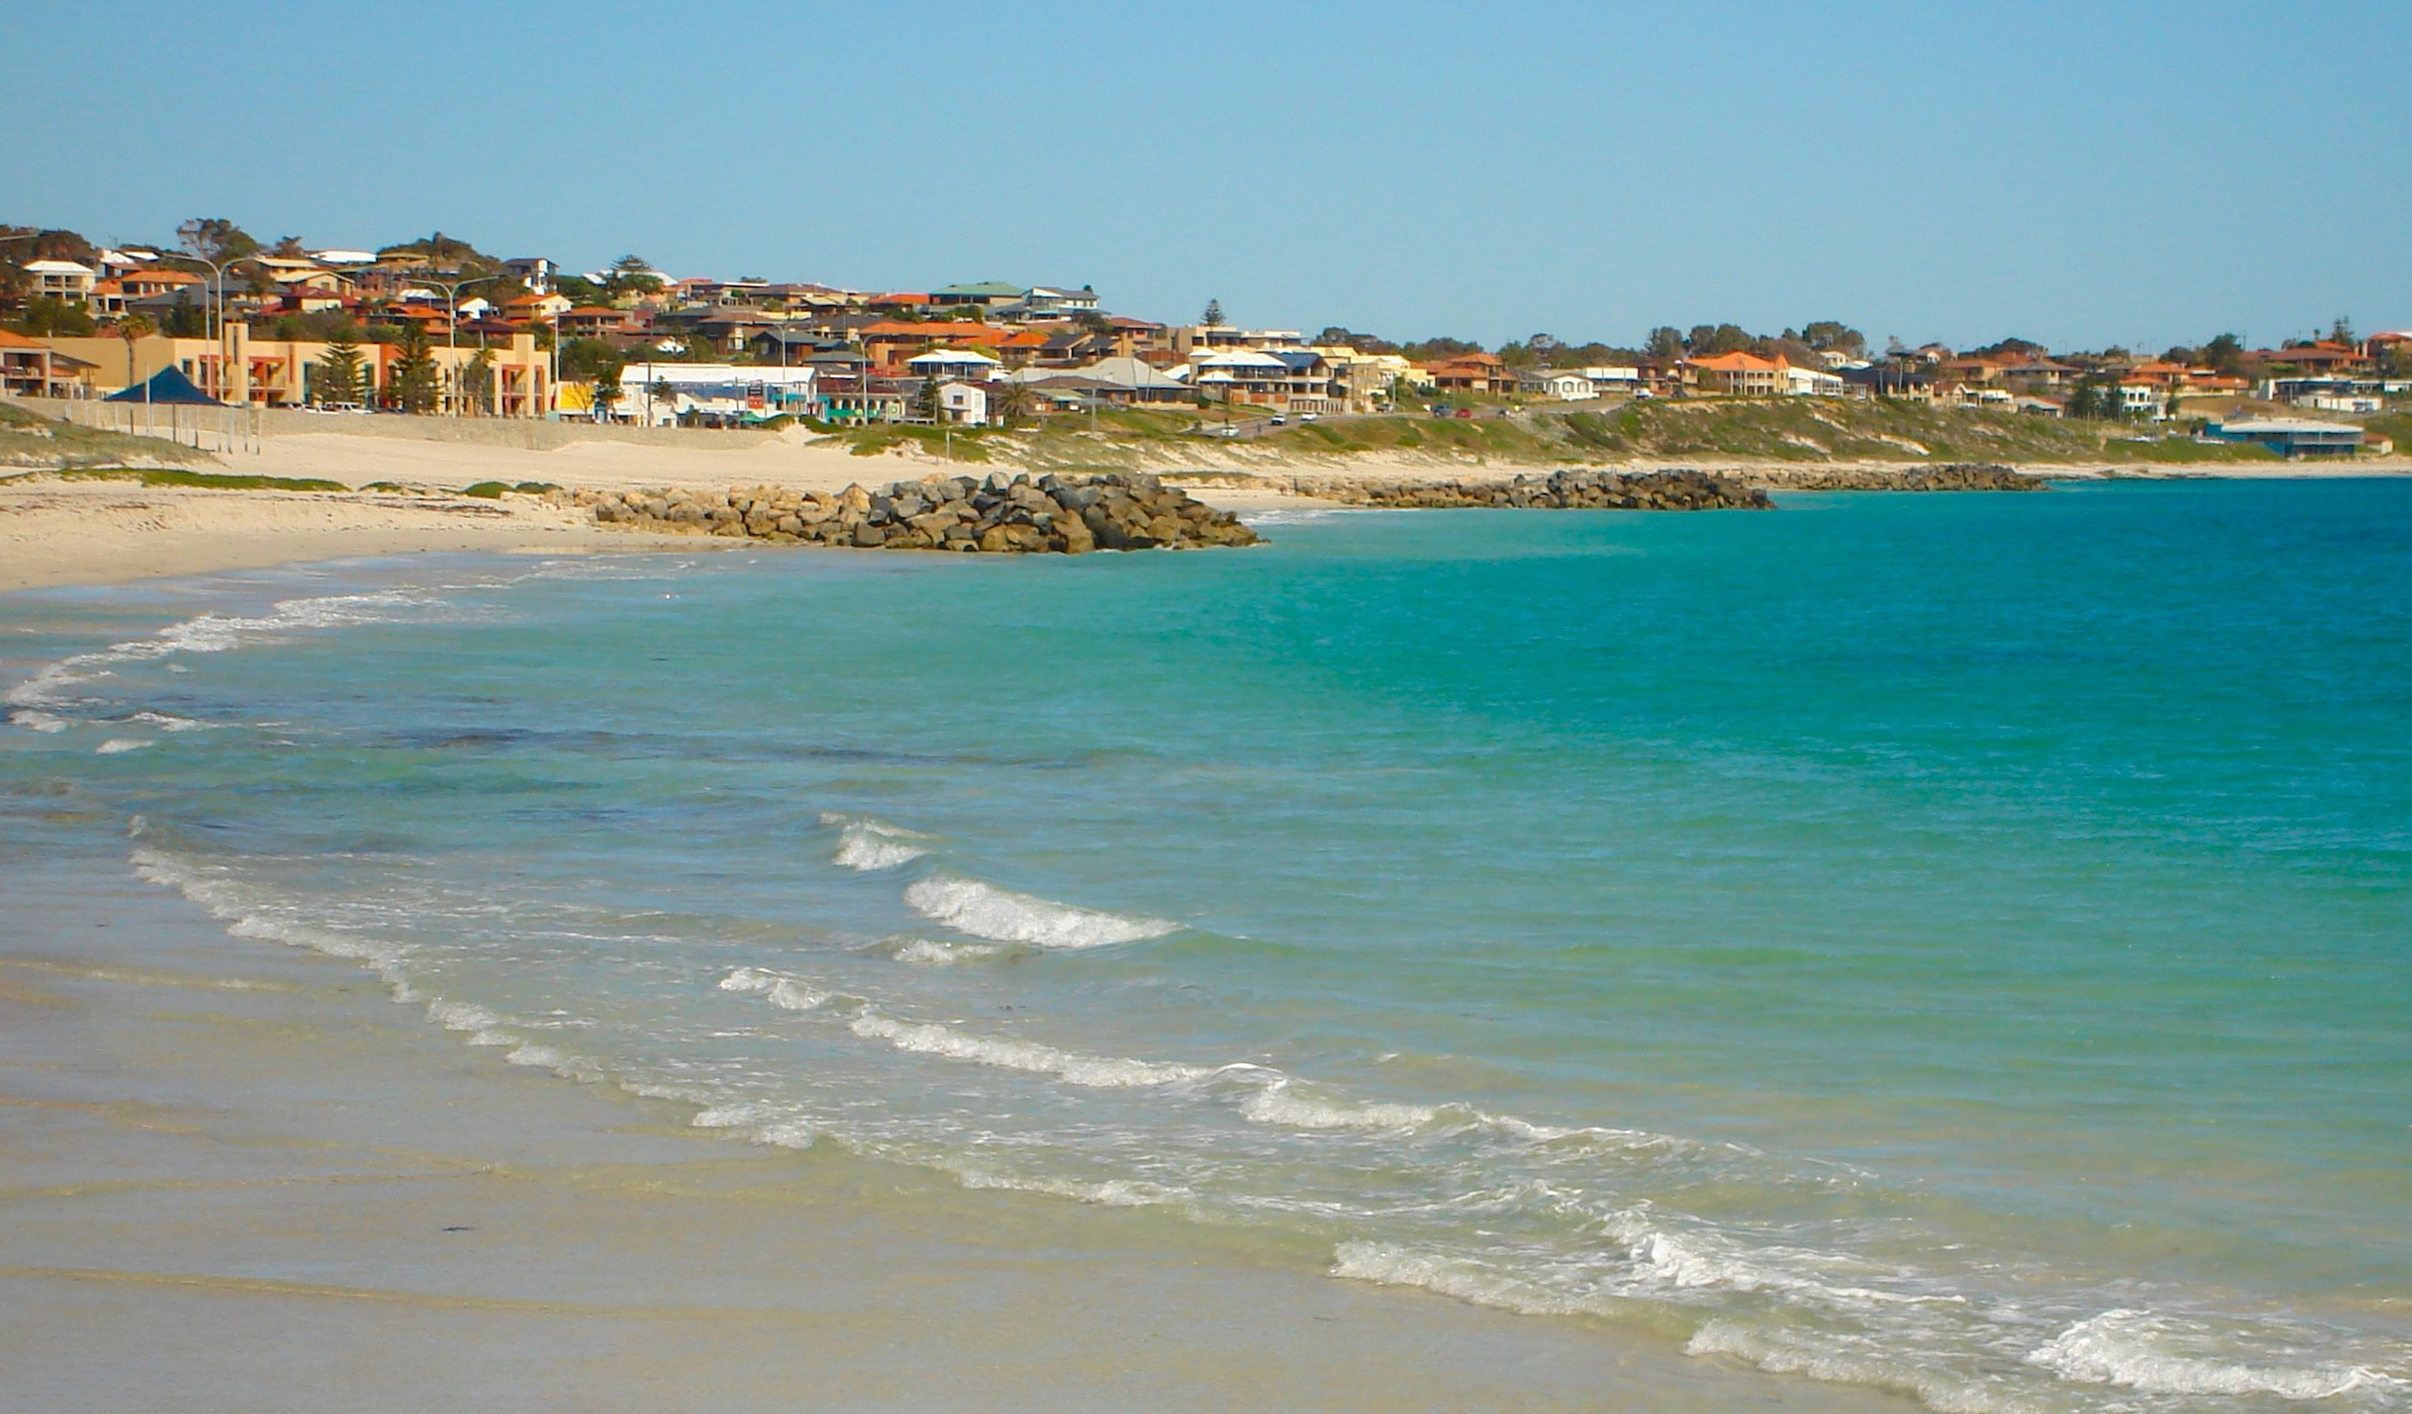 Sorrento_Beach_1.jpg